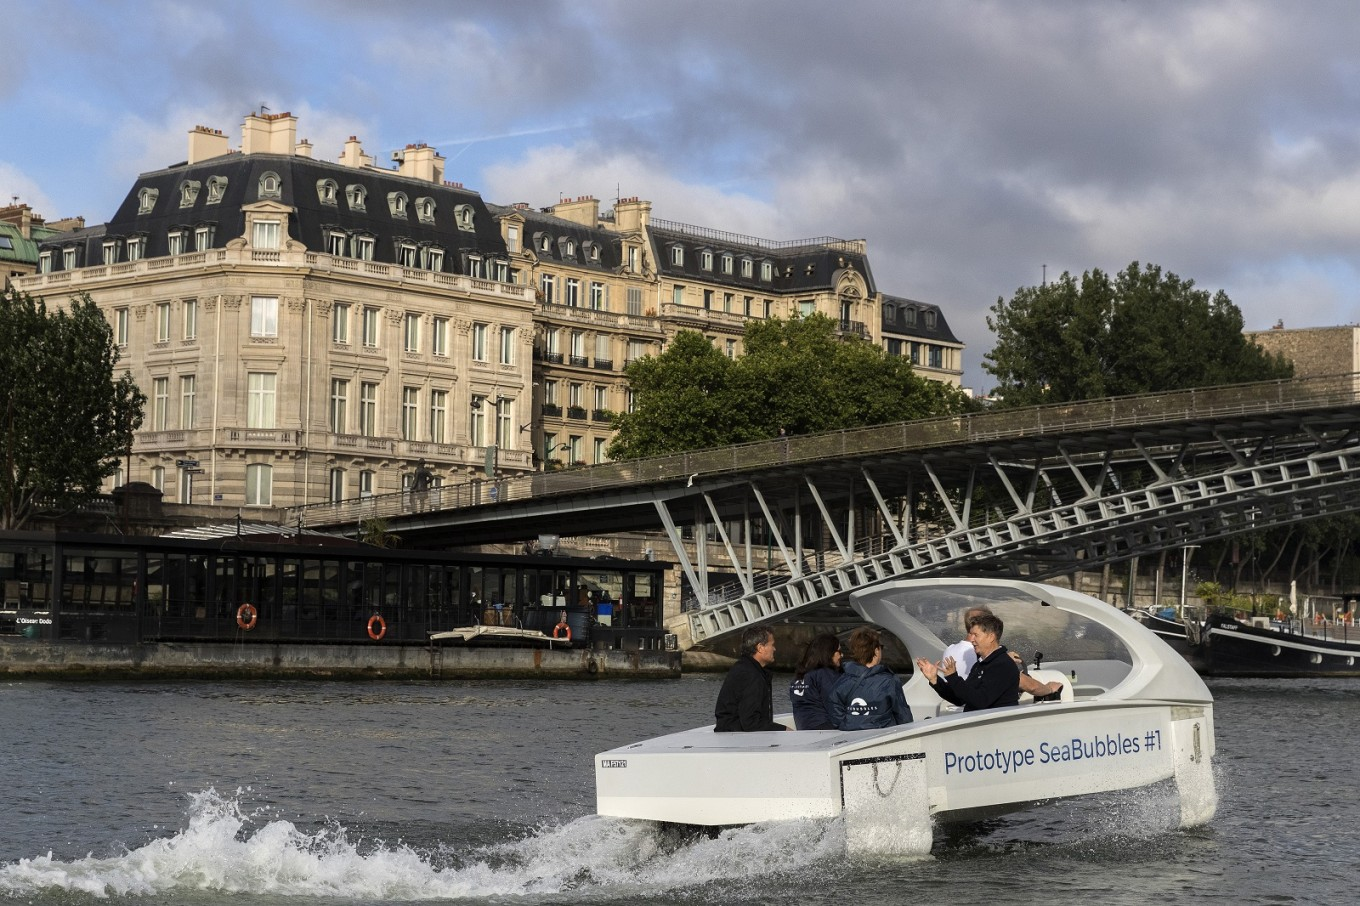 Noiseless river 'bubble' taxi sails through Paris test